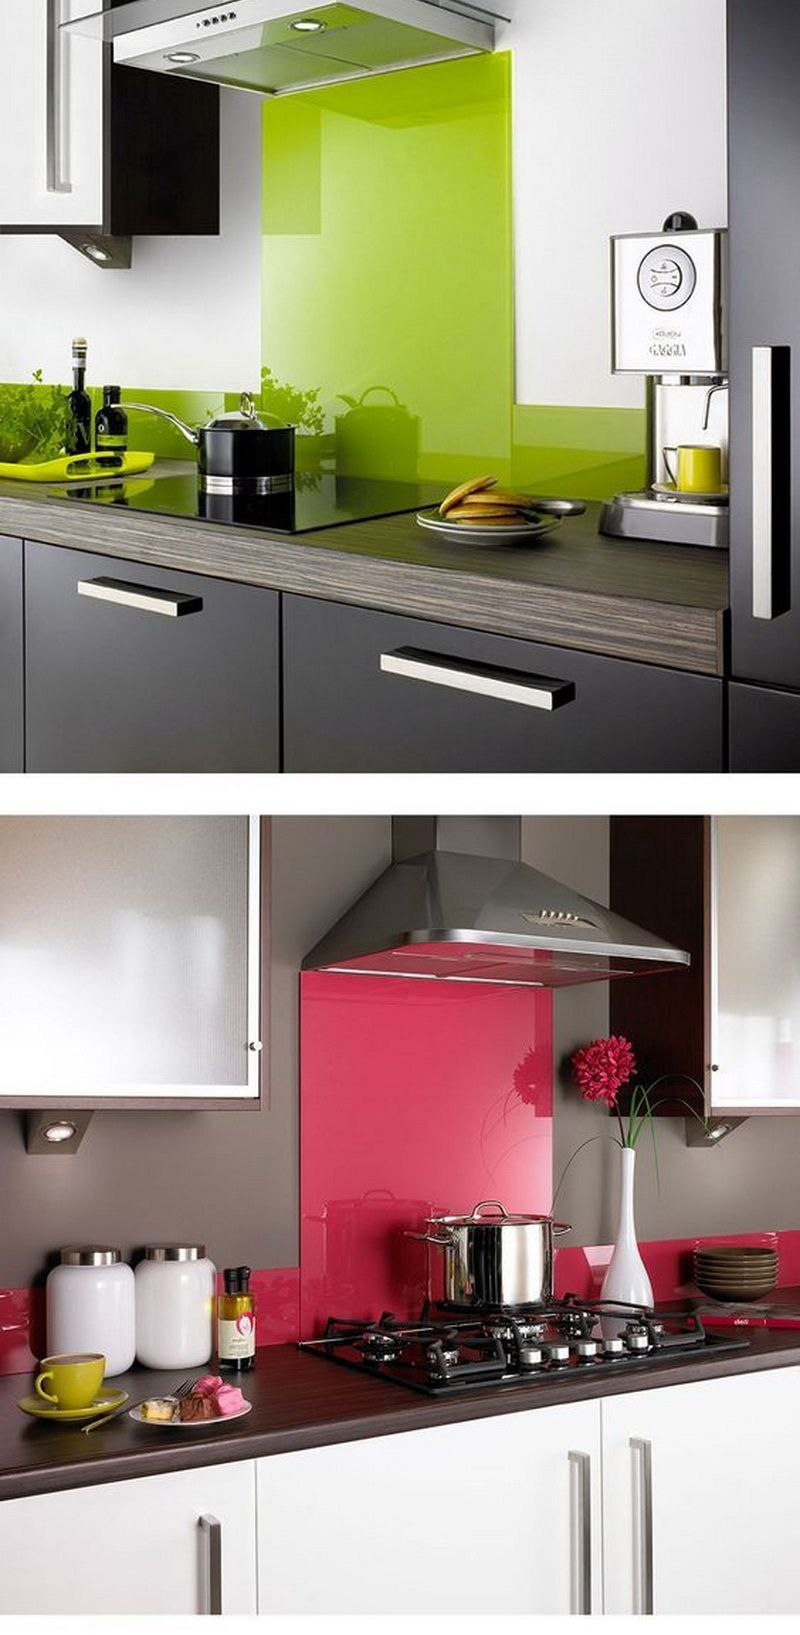 Color pop kitchen design interior decorating ideas kitchens nest also adorable with of rh in pinterest